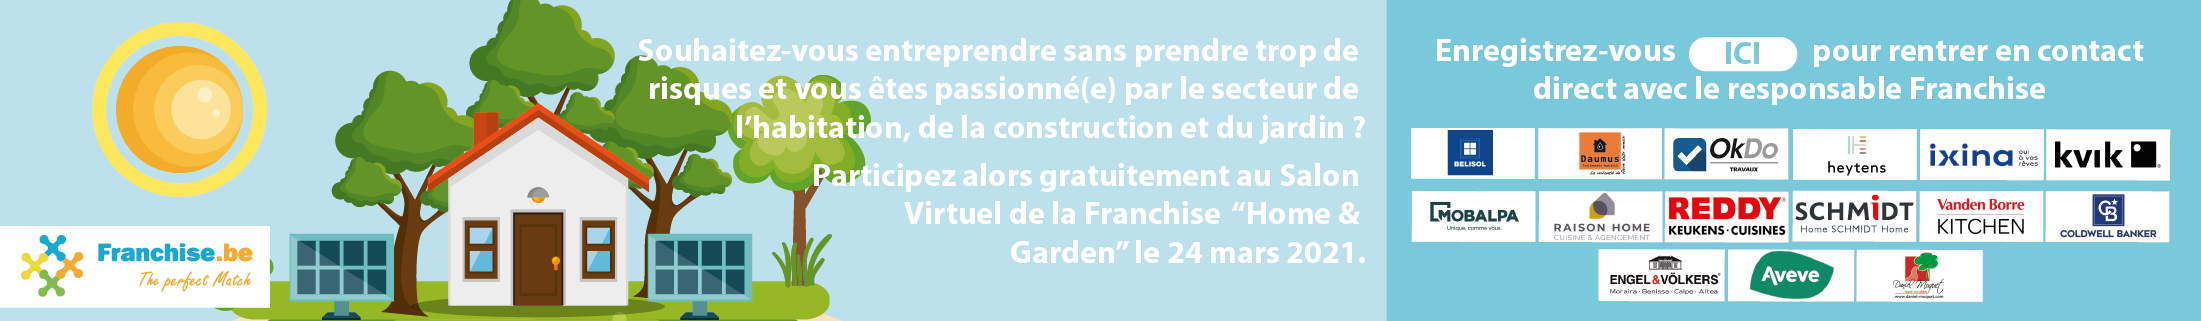 "Participez gratuitement au Salon Virtuel de la Franchise ""Maison & Jardin"" le mars 2021"